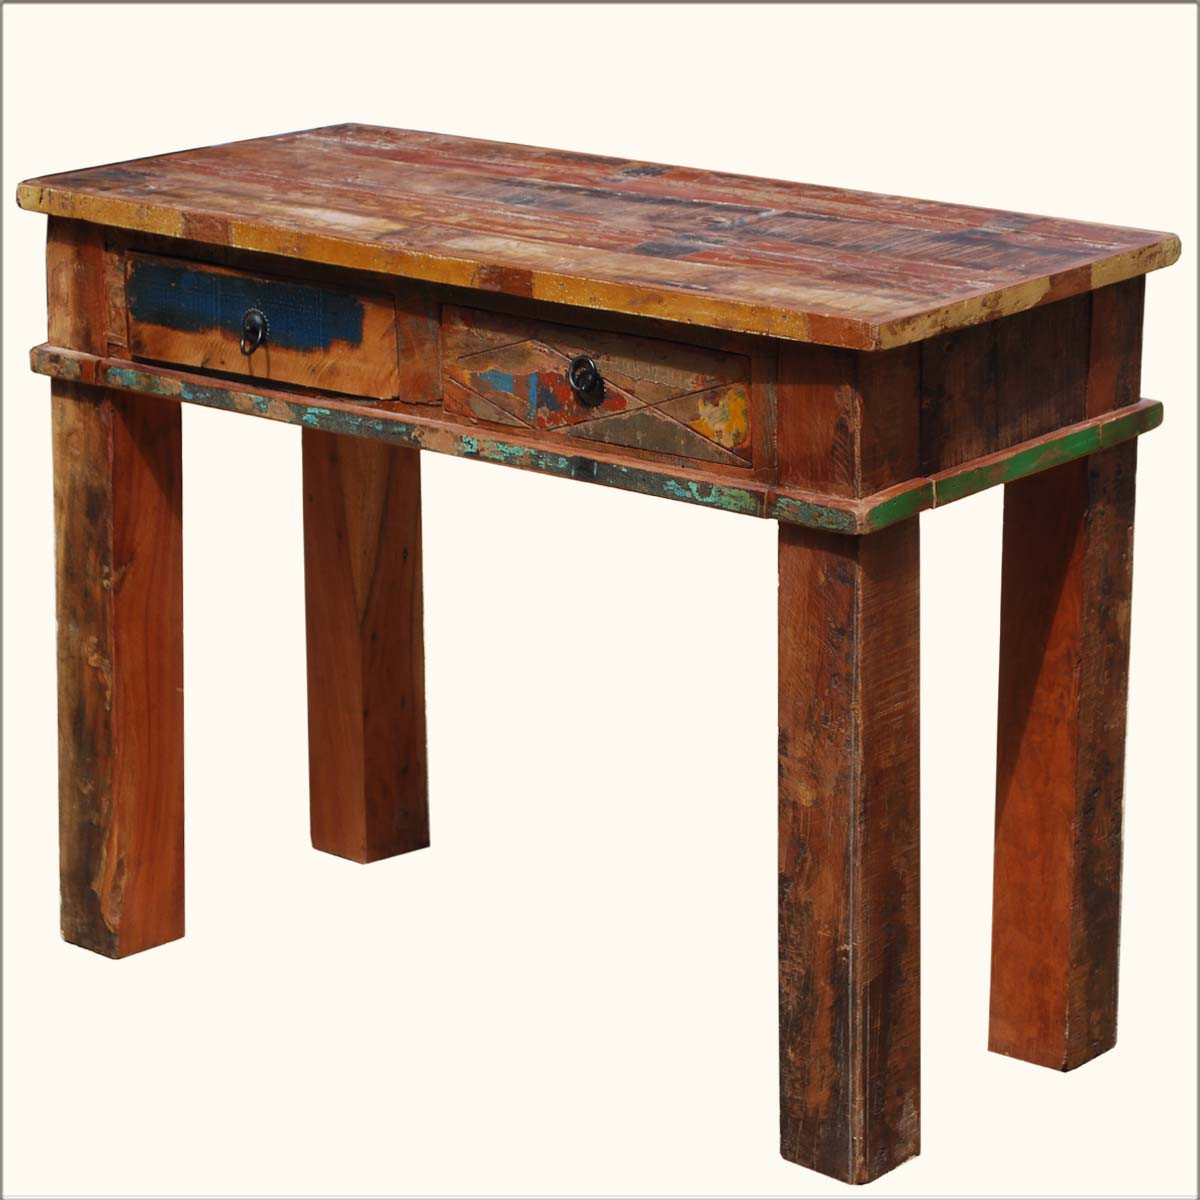 Best ideas about Distressed Entryway Table . Save or Pin Furniture Cool Distressed Wood Console Table With Small Now.